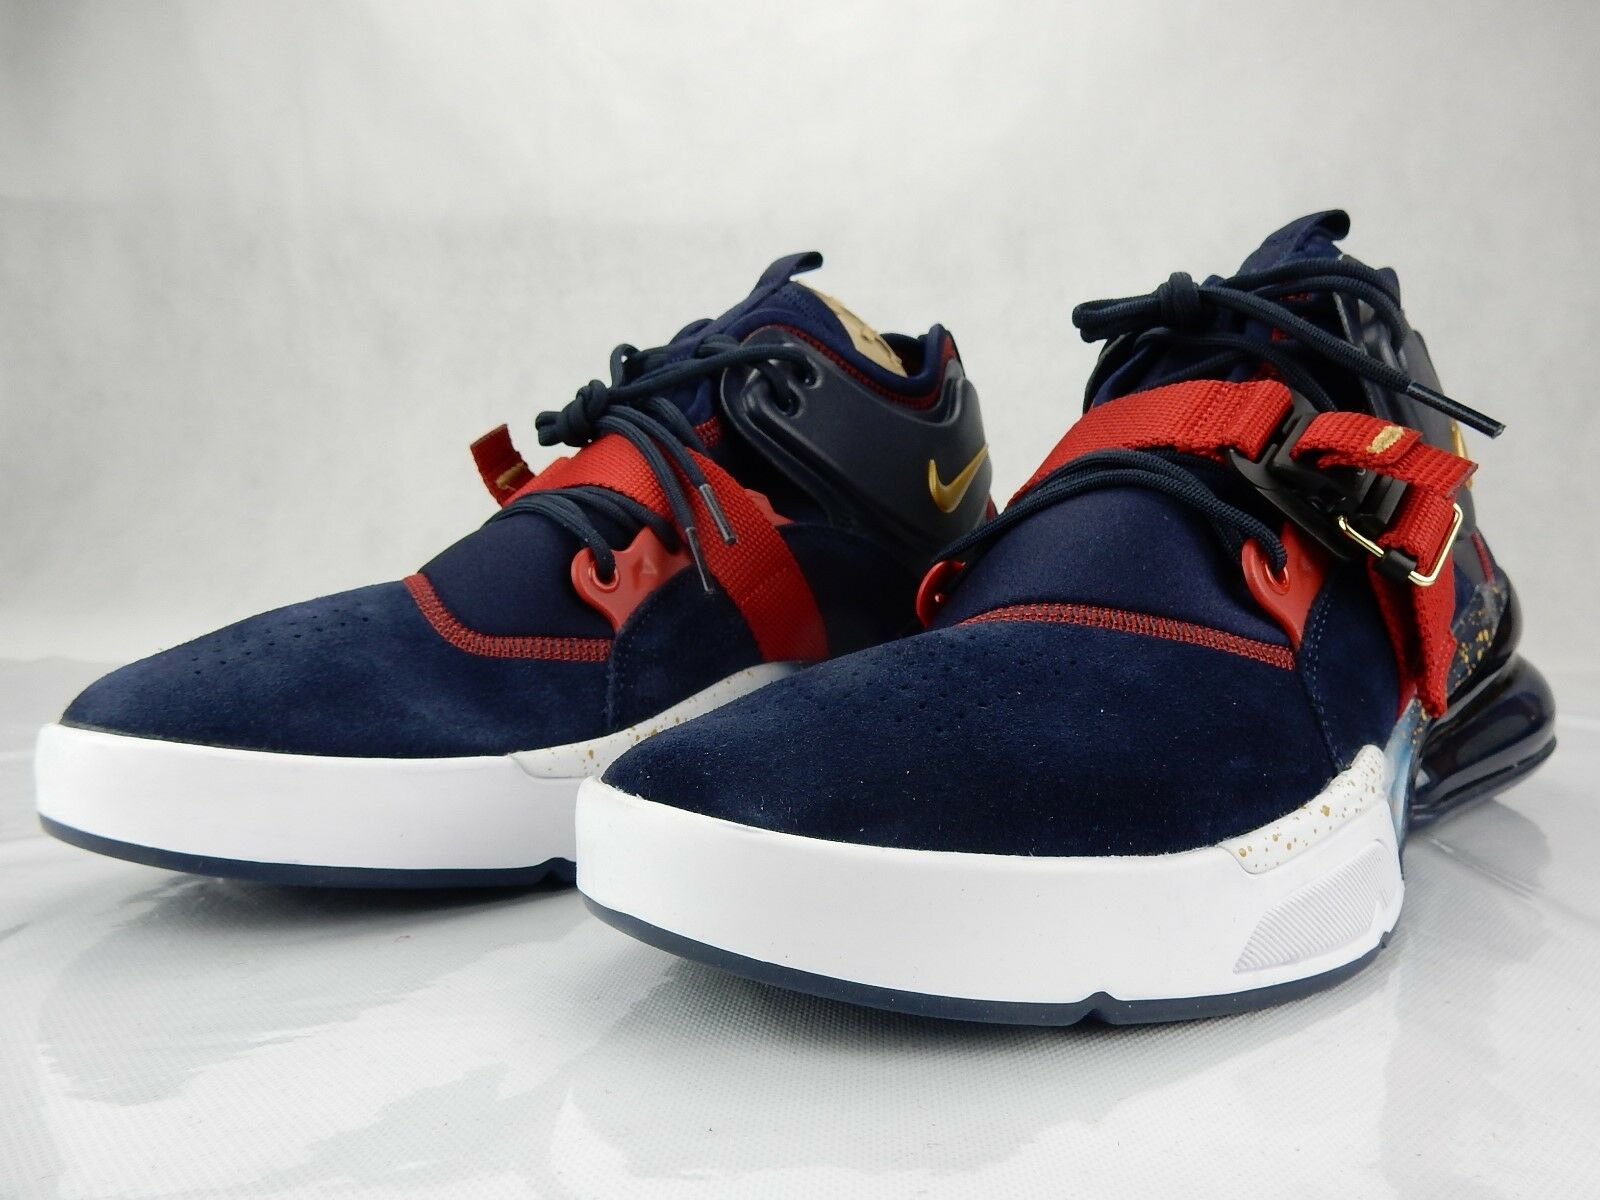 nike air force 270 olympic bleu rouge ah6772 400  nouveaux  400  chaussure taille 7,5 baskets 3f8b00